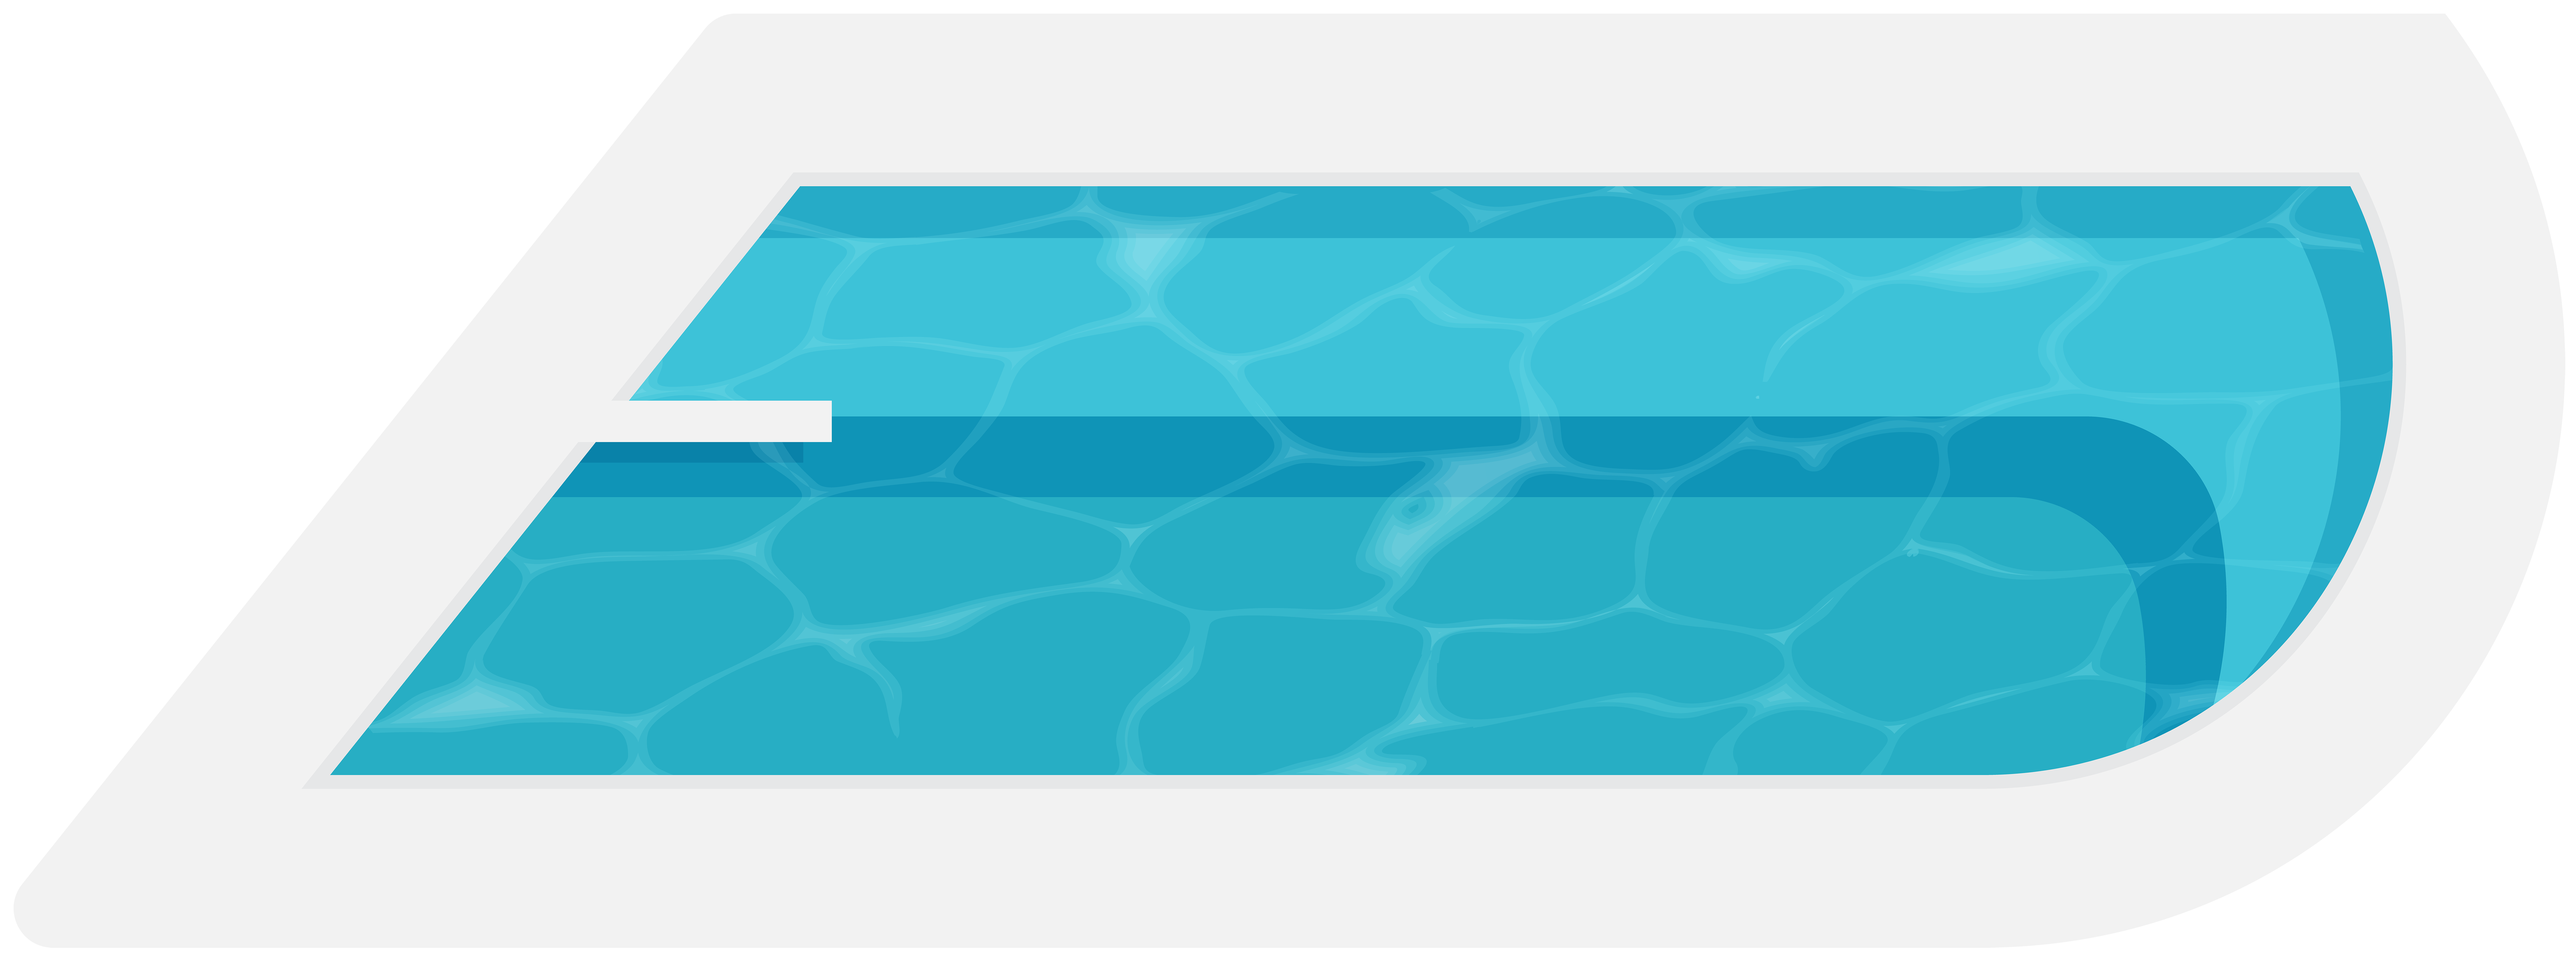 House clipart pool. Swimming png clip art